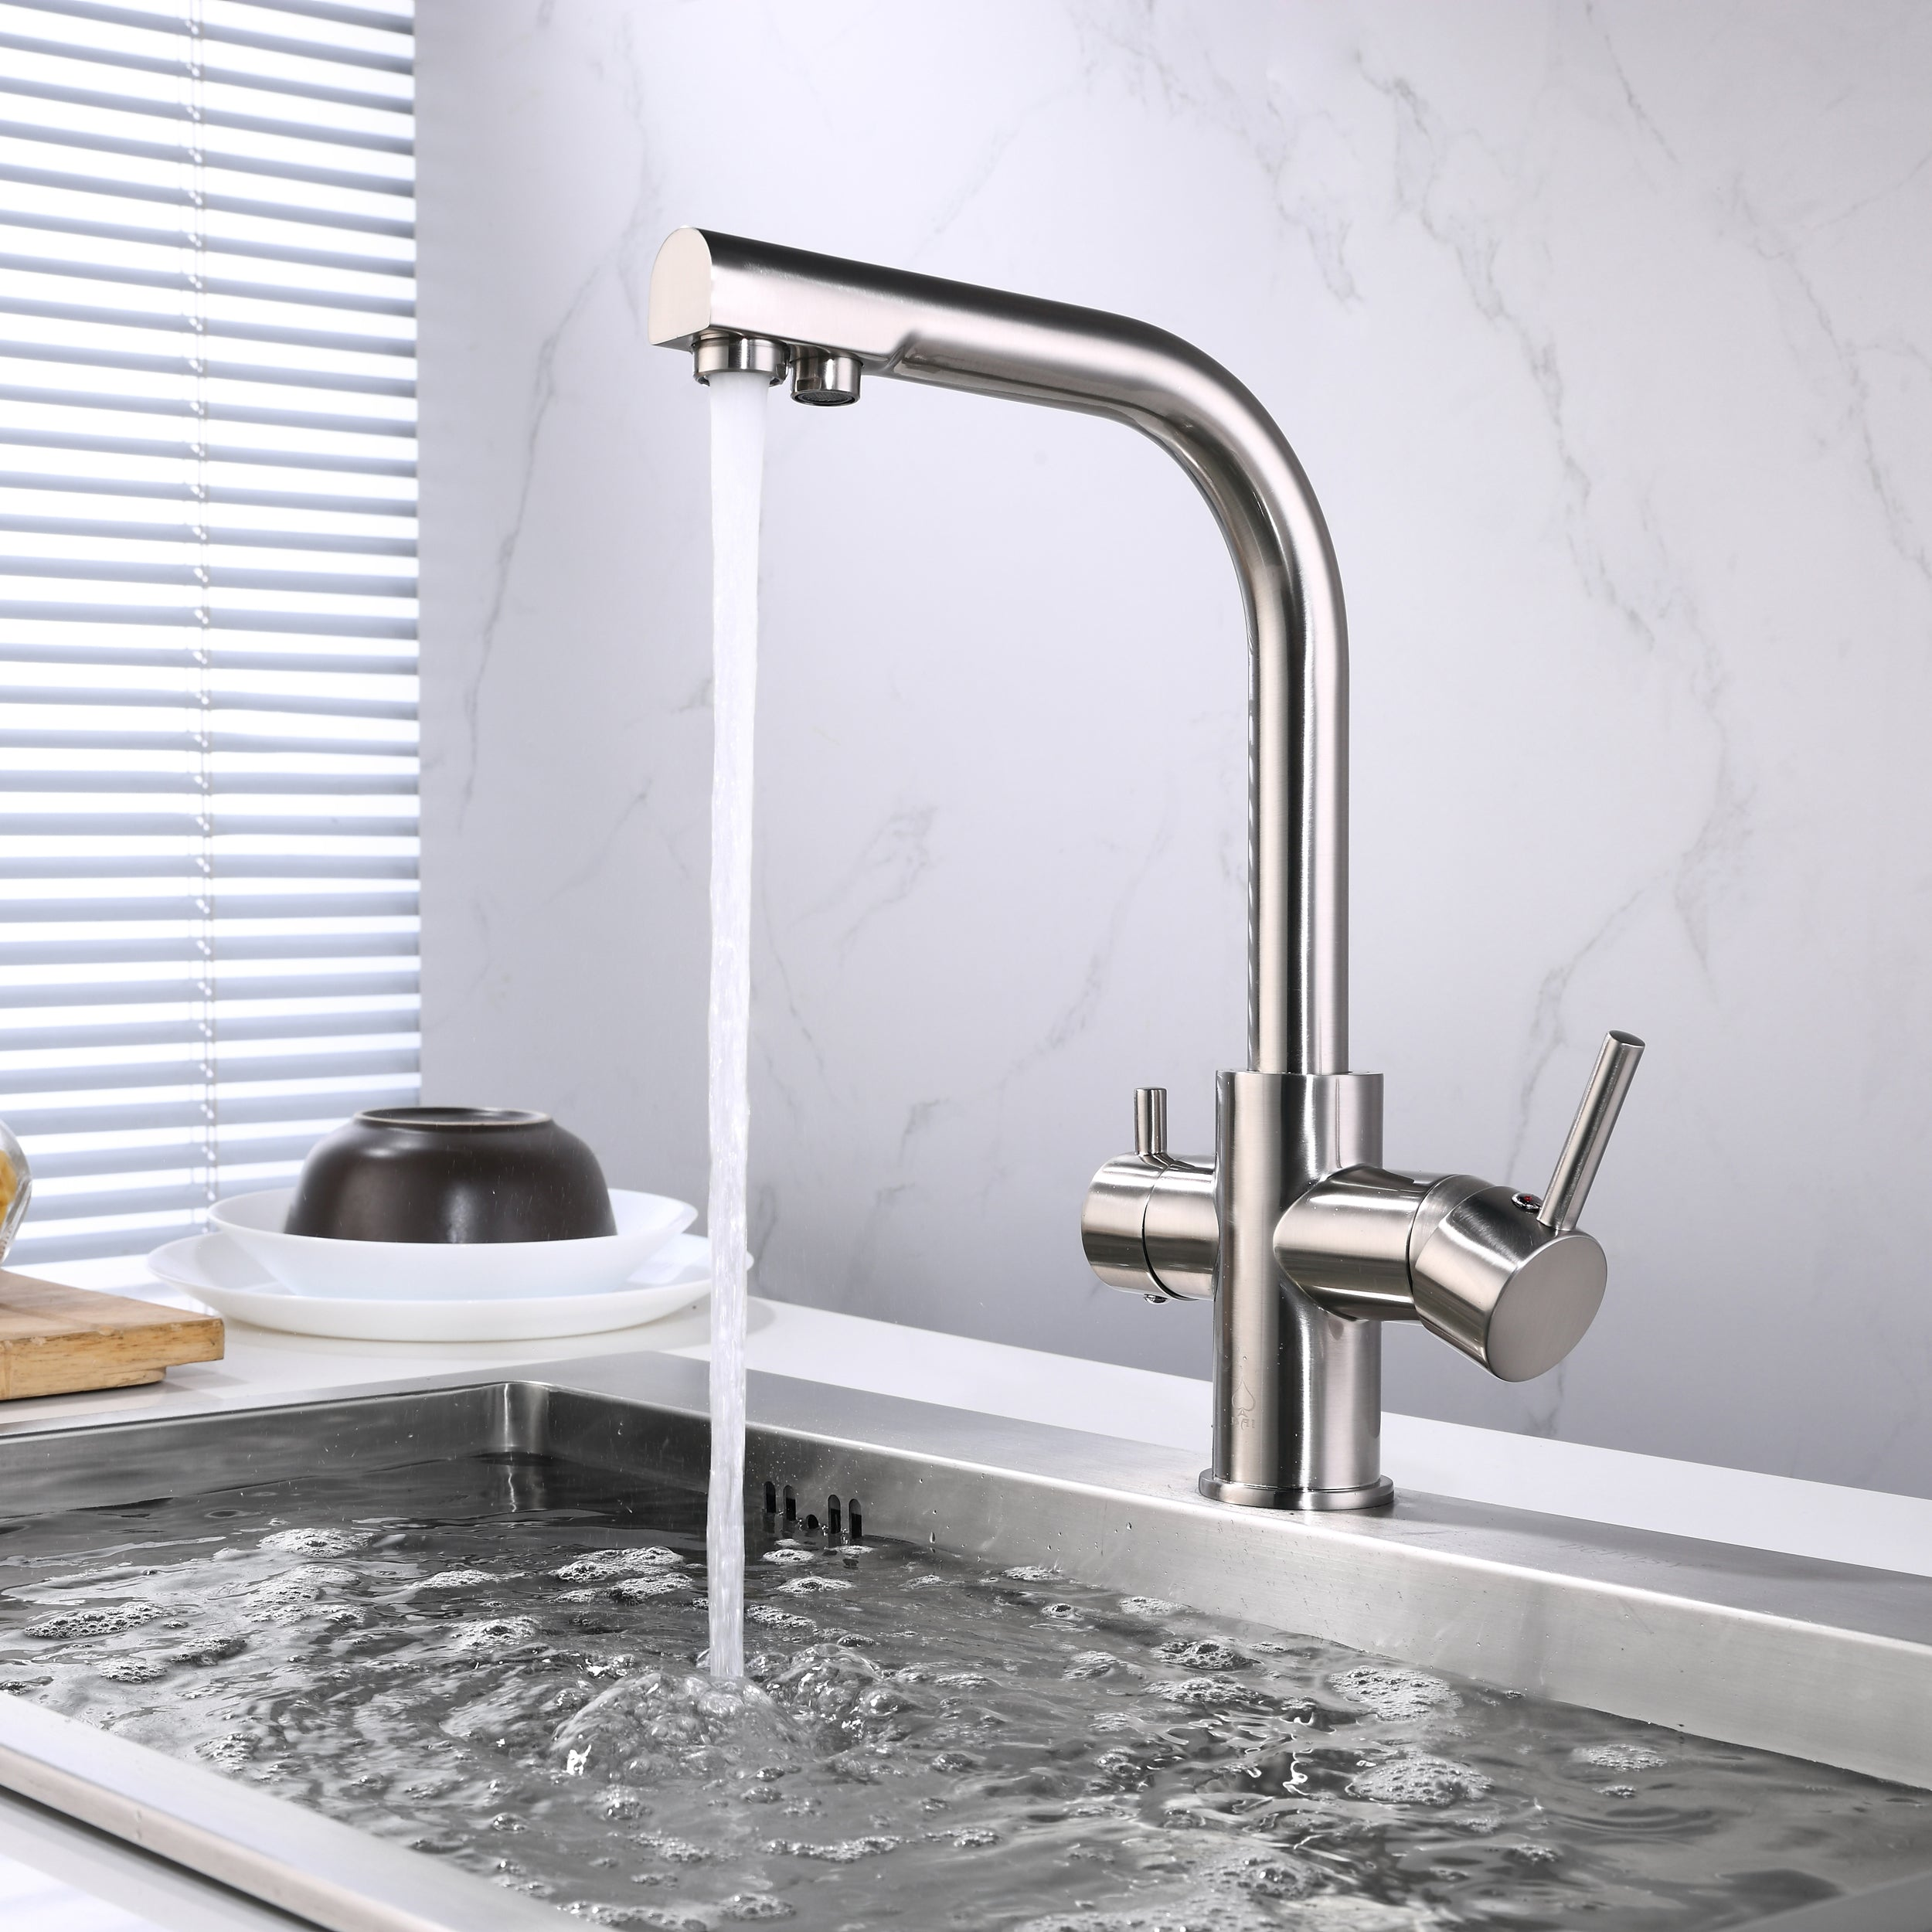 ... BAI 0664 Kitchen Faucet / Integrated Drinking Water Faucet / Two In One  / Brushed Finish ...